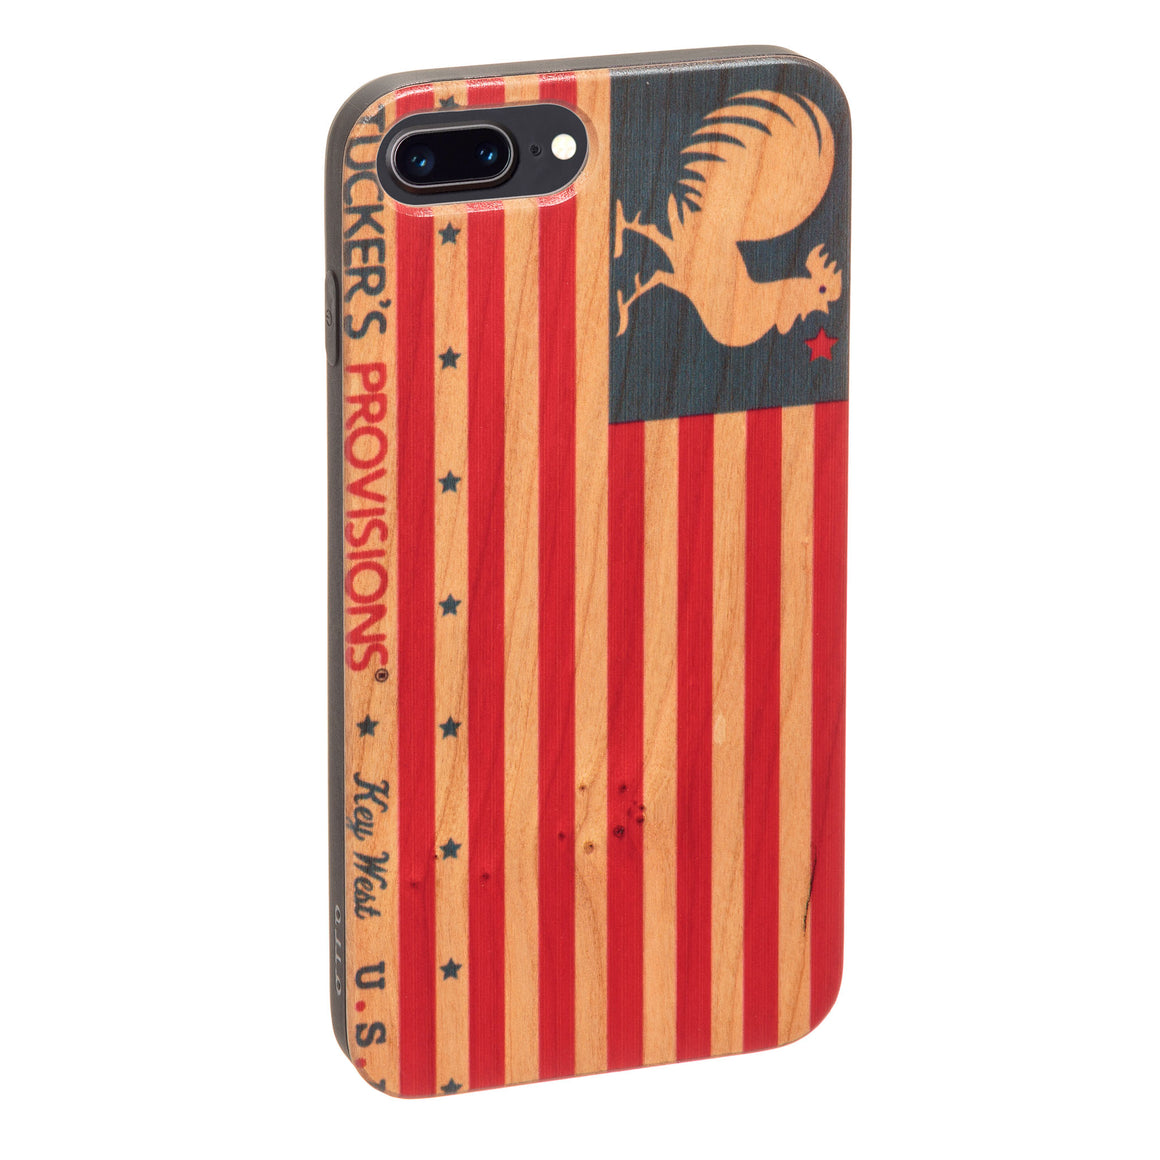 Old Glory iPhone case 7/8